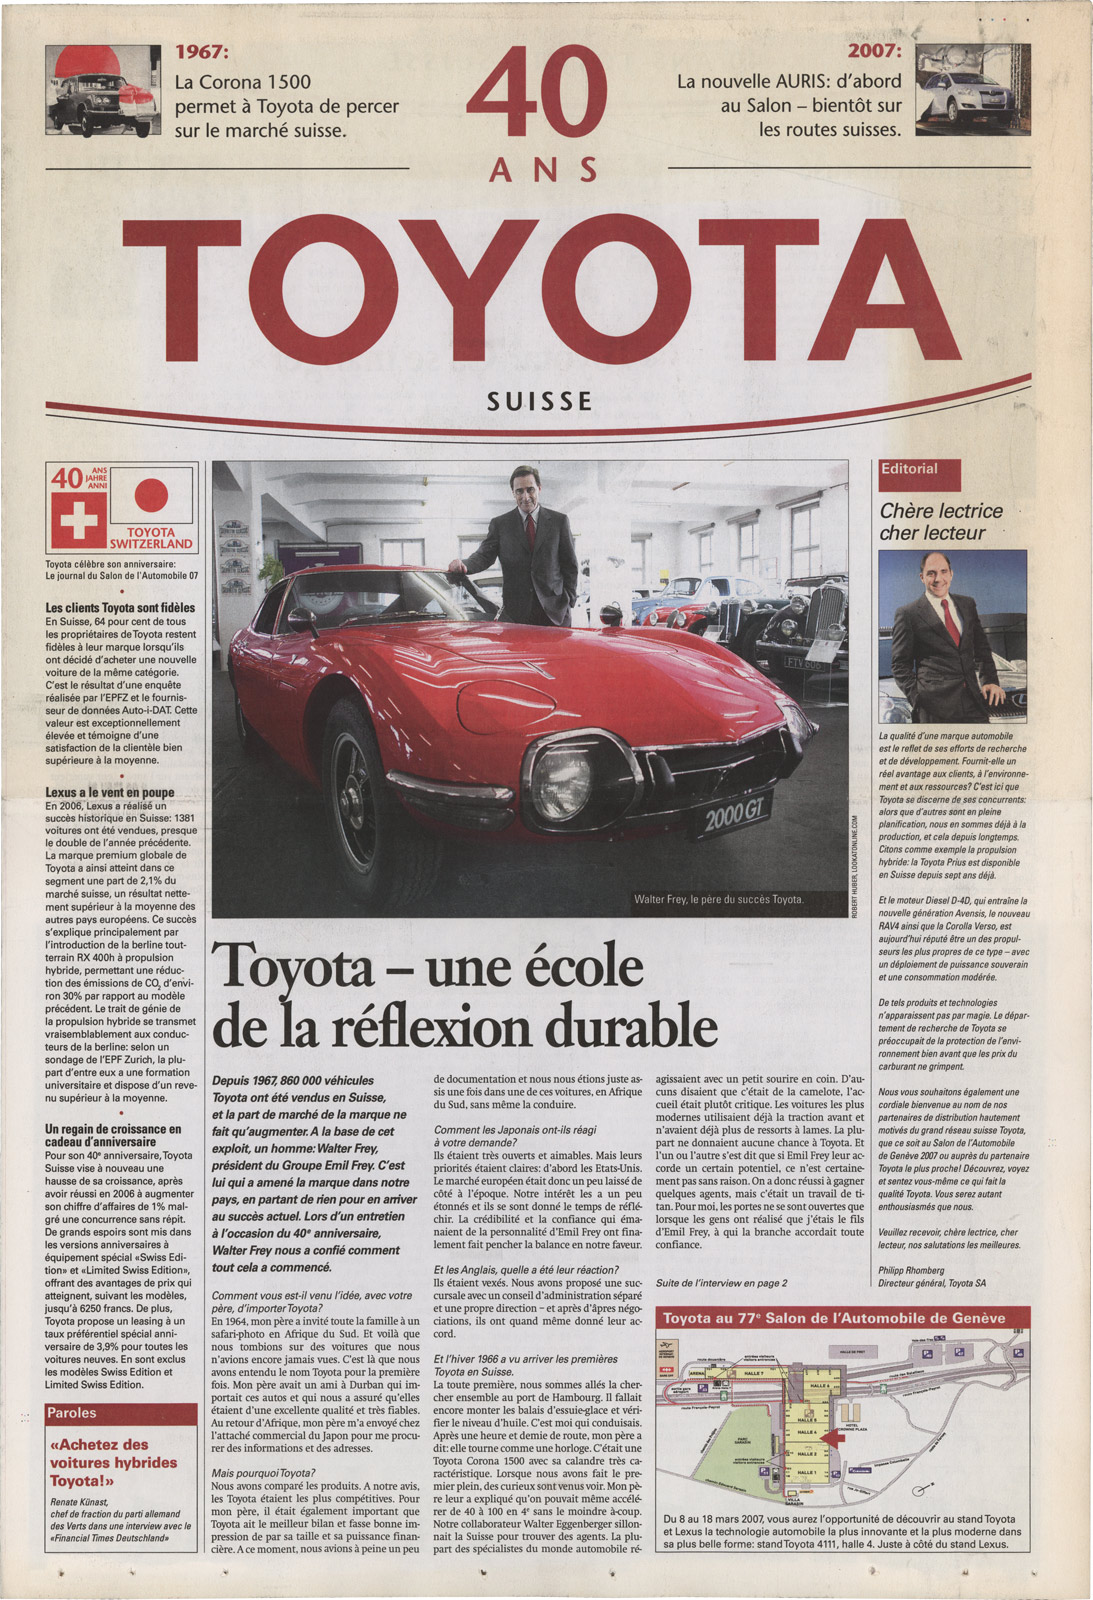 Toyota Business Plan